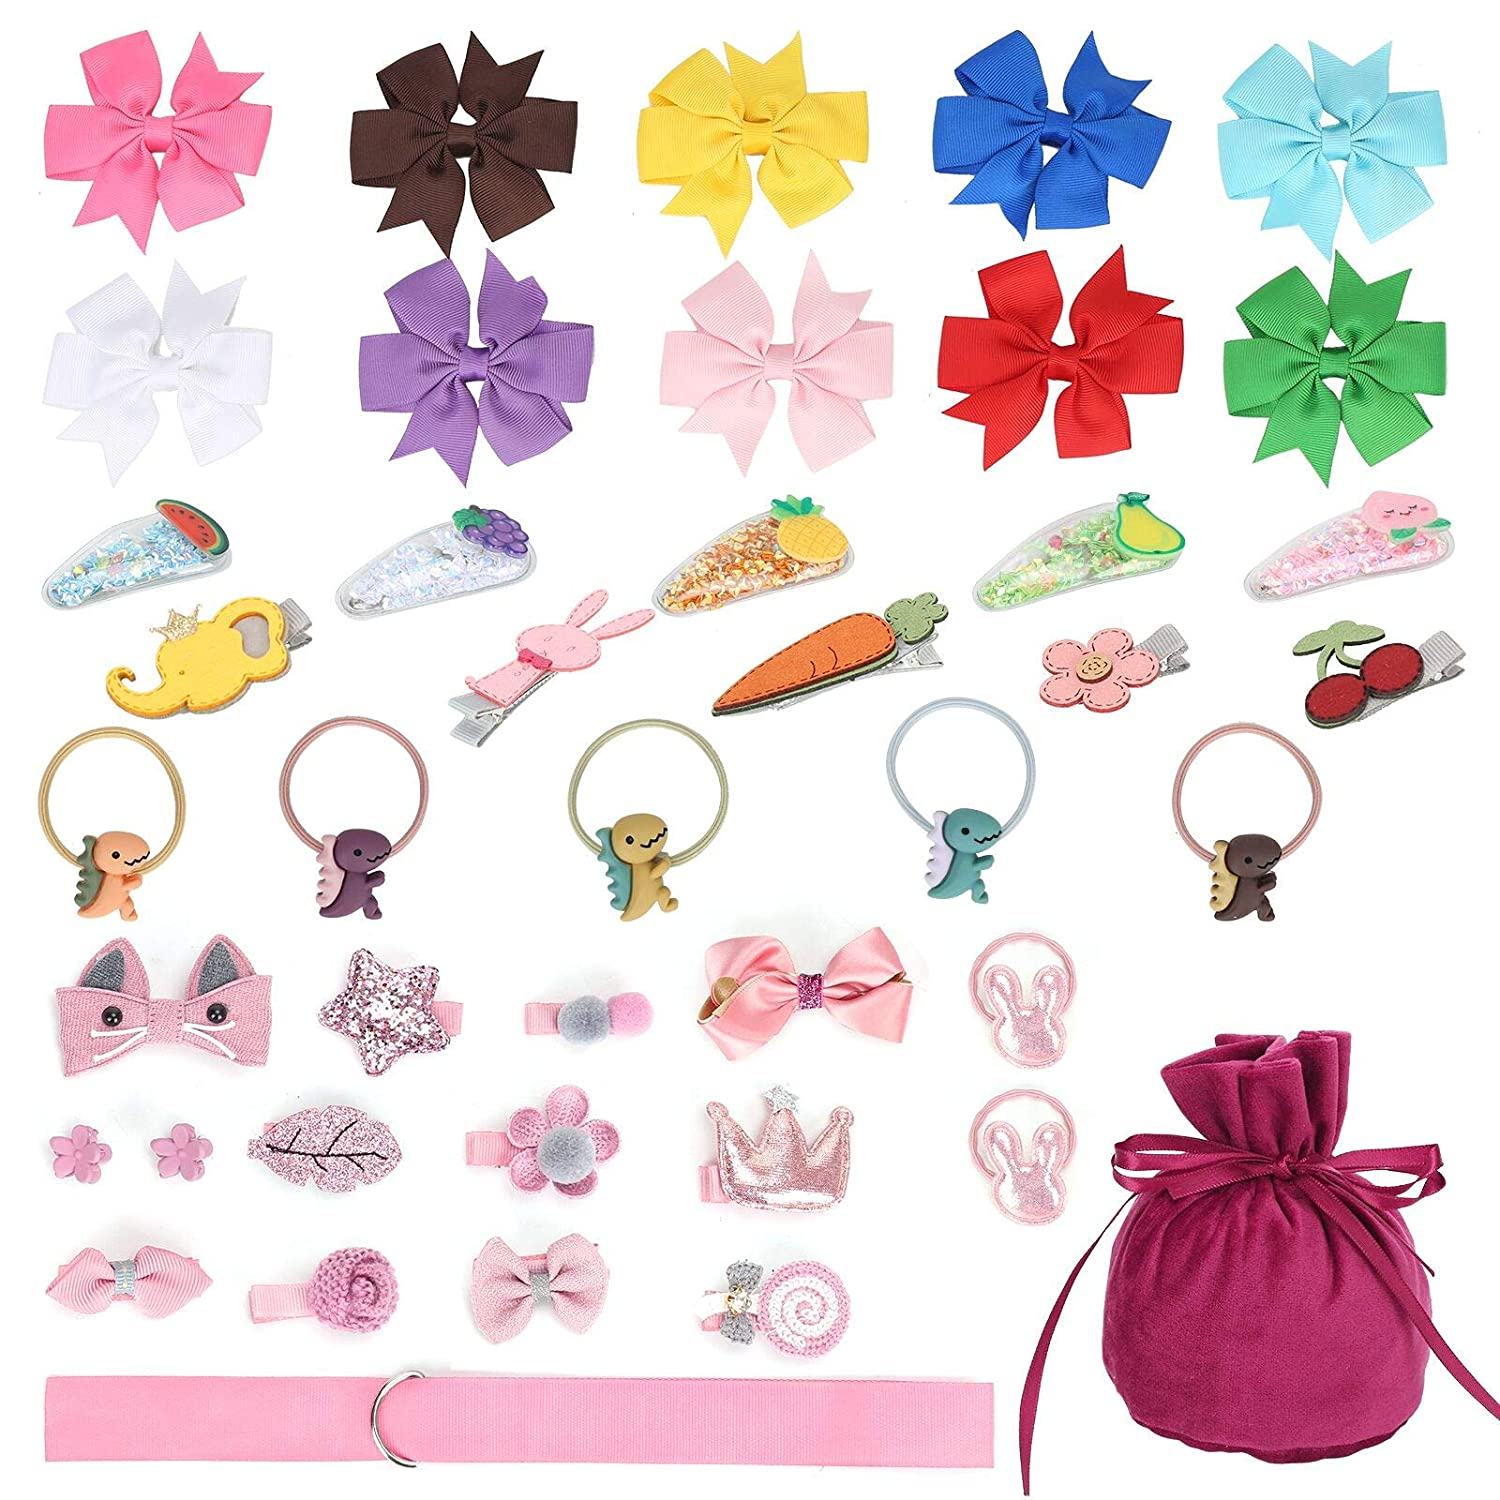 42PCS Hair Clips for Baby Girls Hair Accessories Set for Toddlers Kids Hair Bows Barrettes Hair Elastics Ties with Velvet Gift Bag